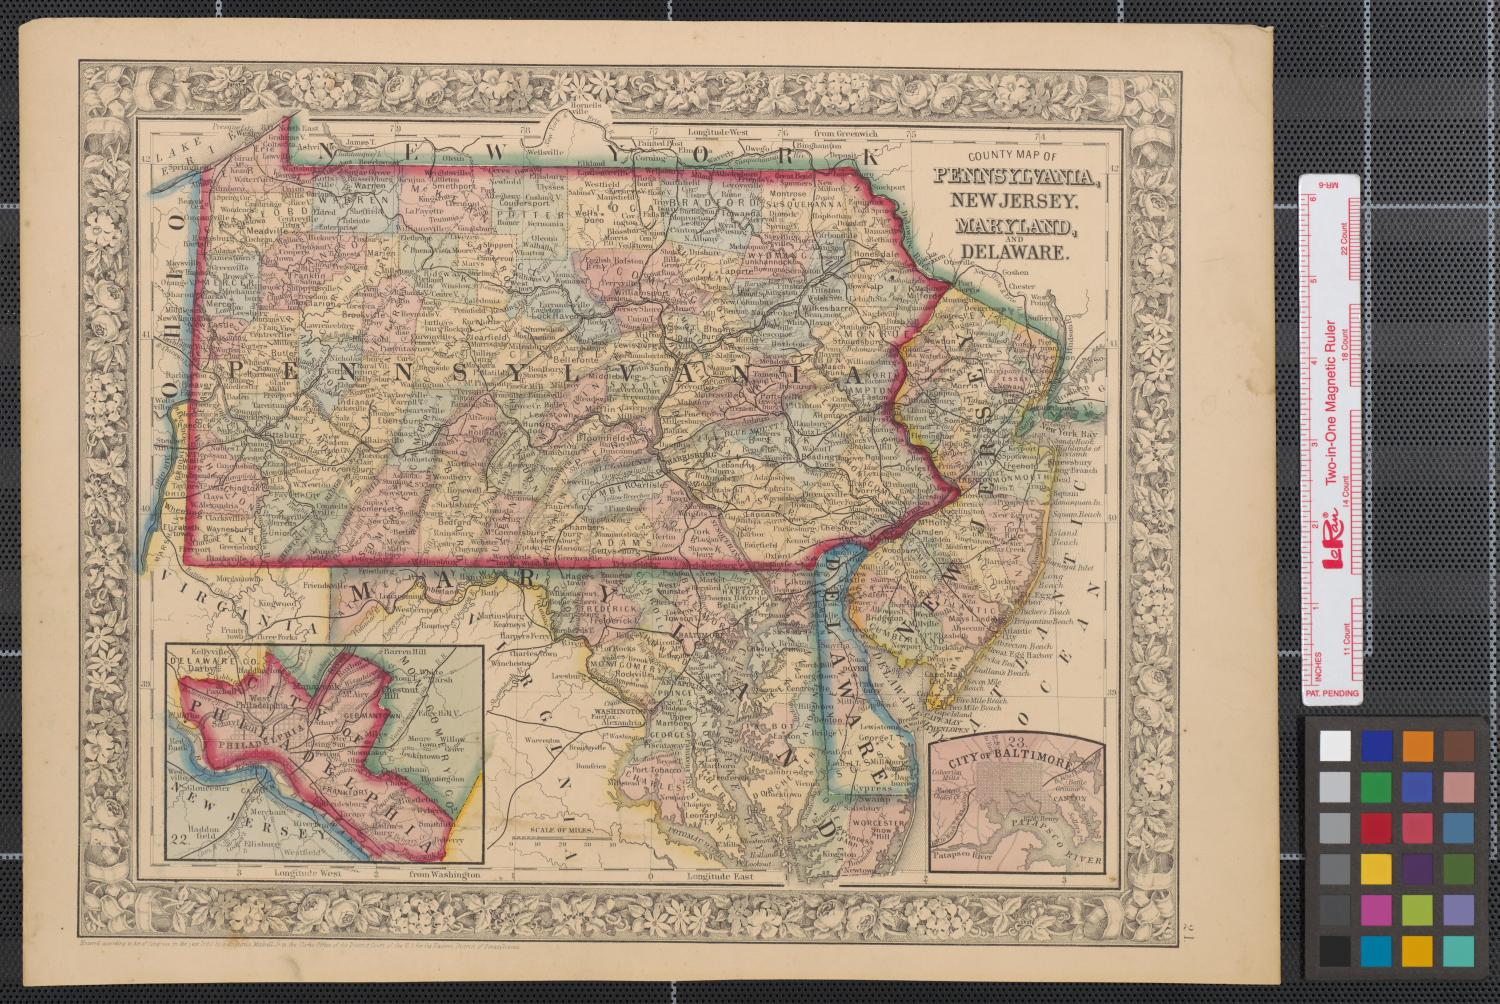 County map of Pennsylvania New Jersey Maryland